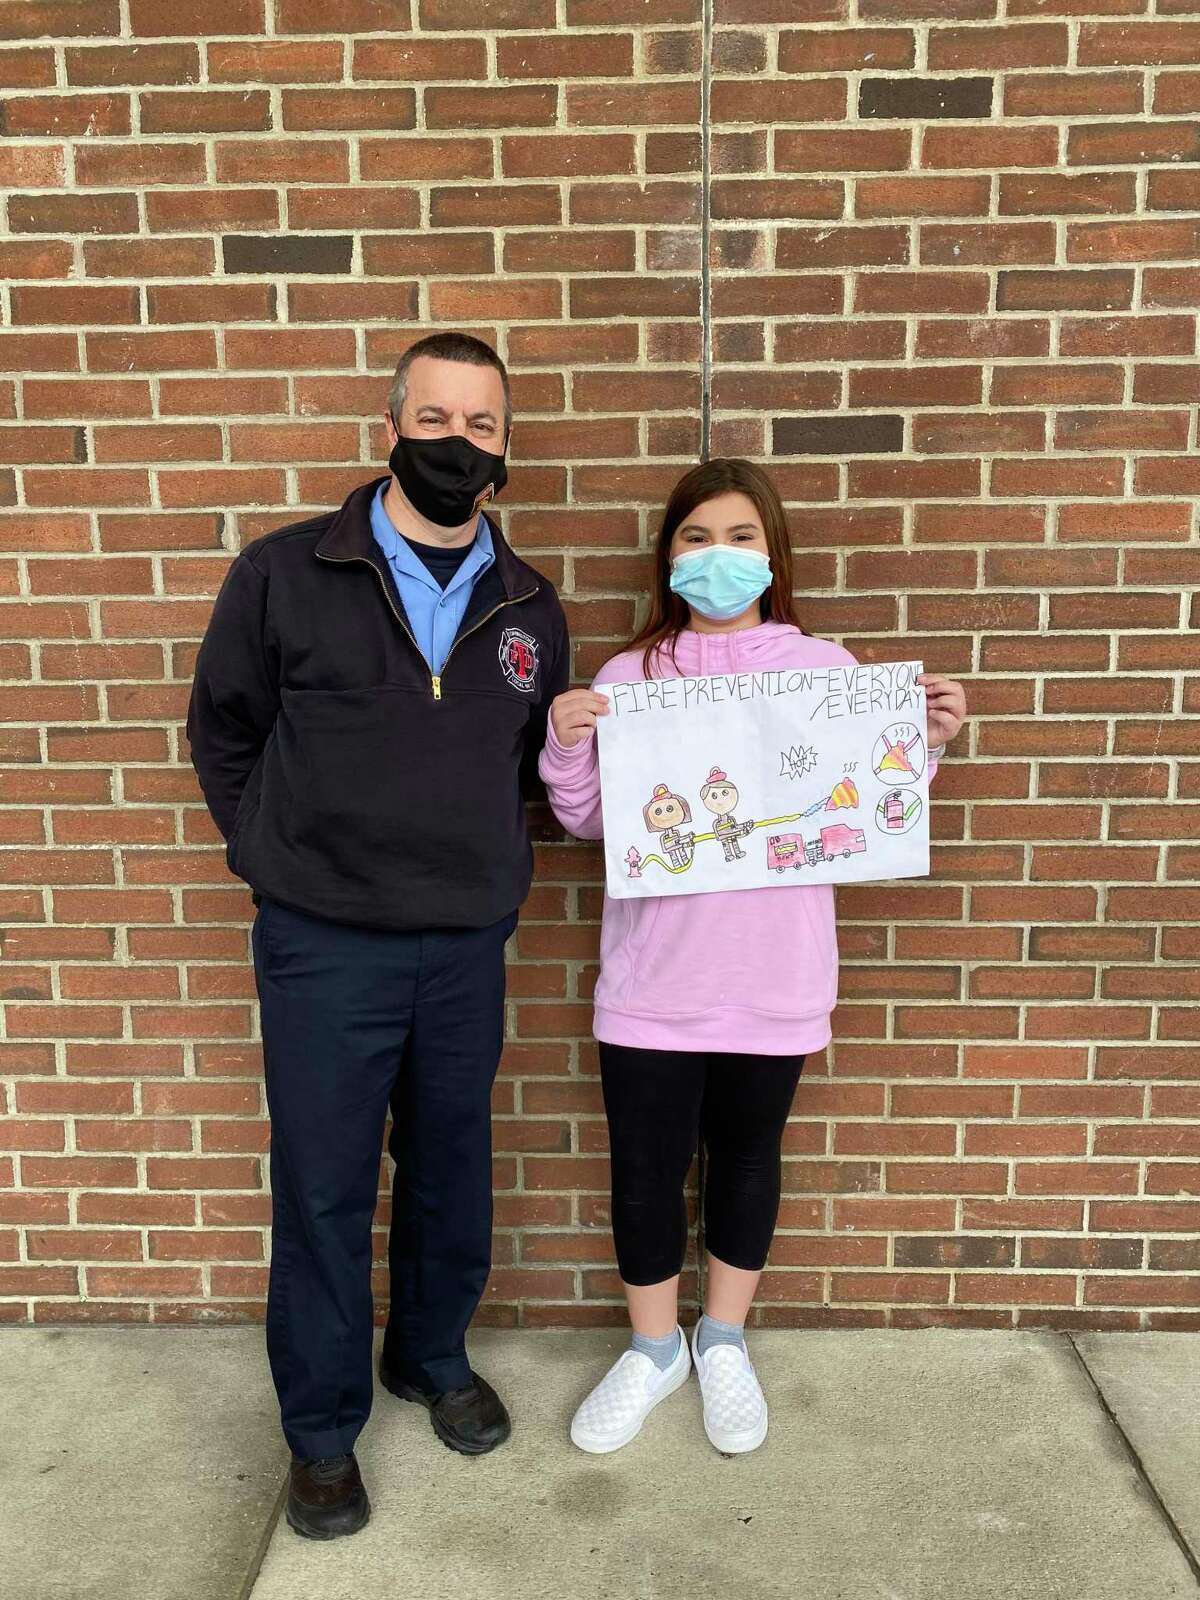 Jarred Howe, Torrington deputy fire marshal, stands with Mia Diaz, Forbes School fourth grader, winner of the 2021 fire prevention poster contest.